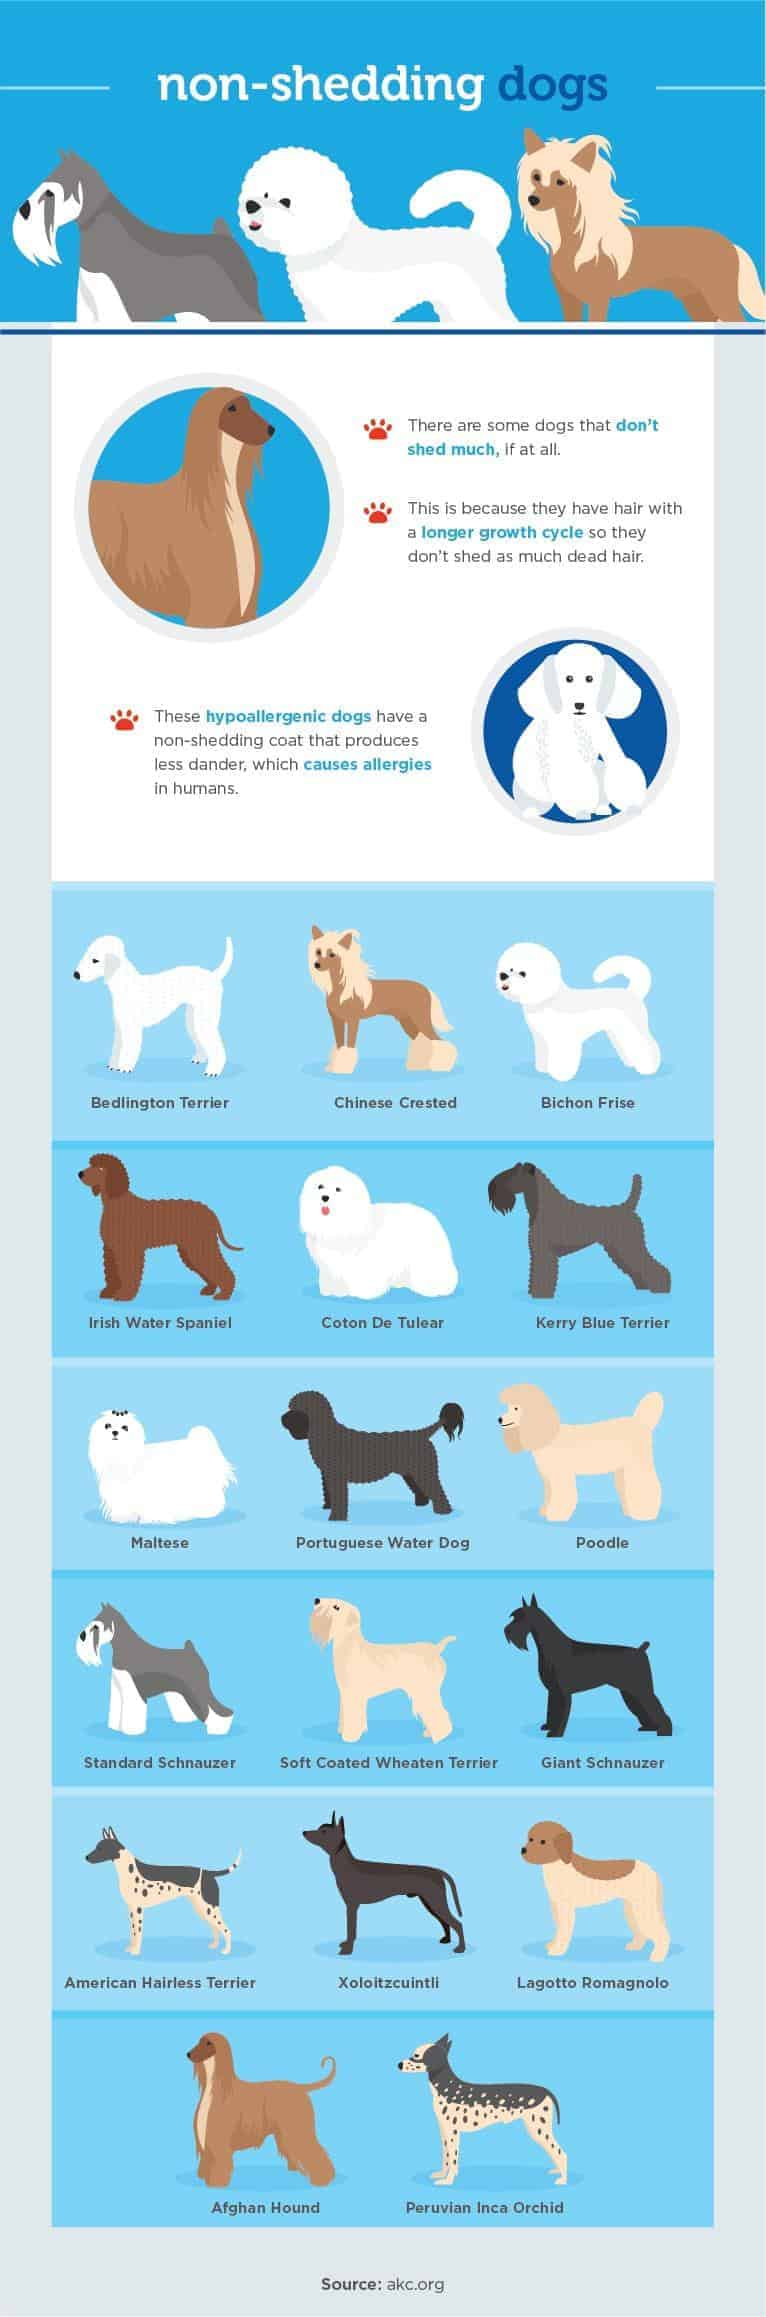 non-shedding dogs